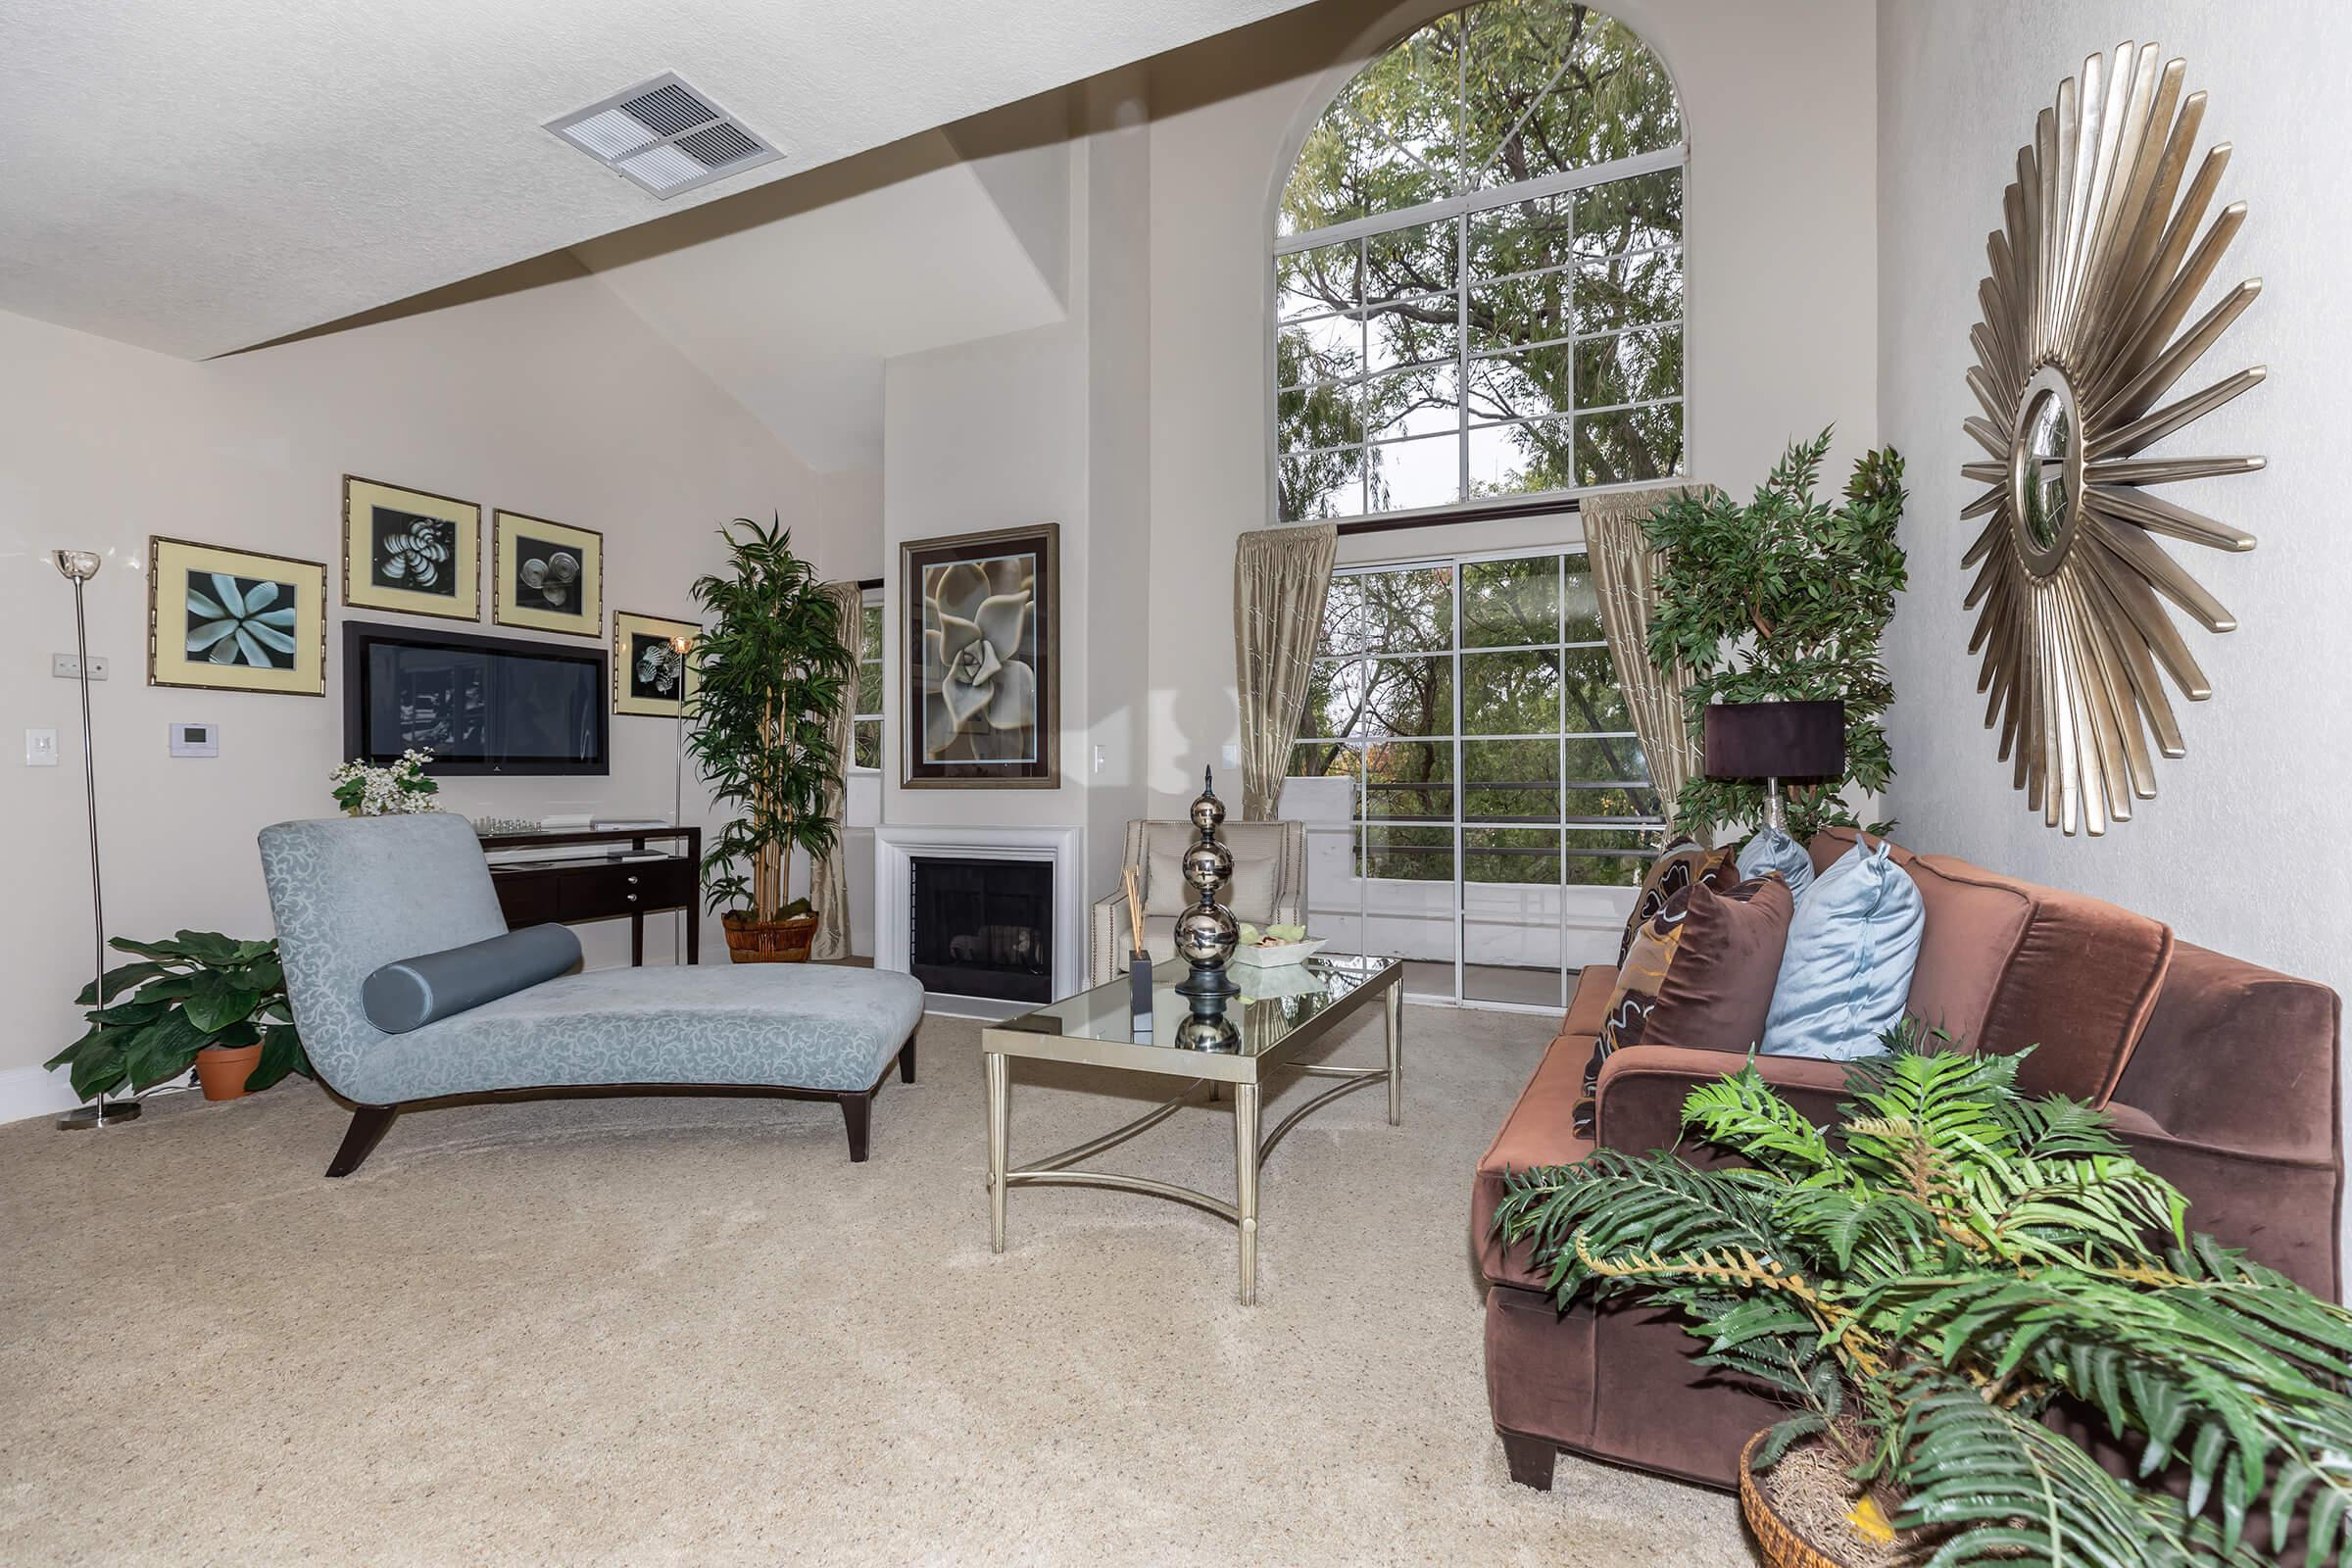 a living room filled with furniture and decor